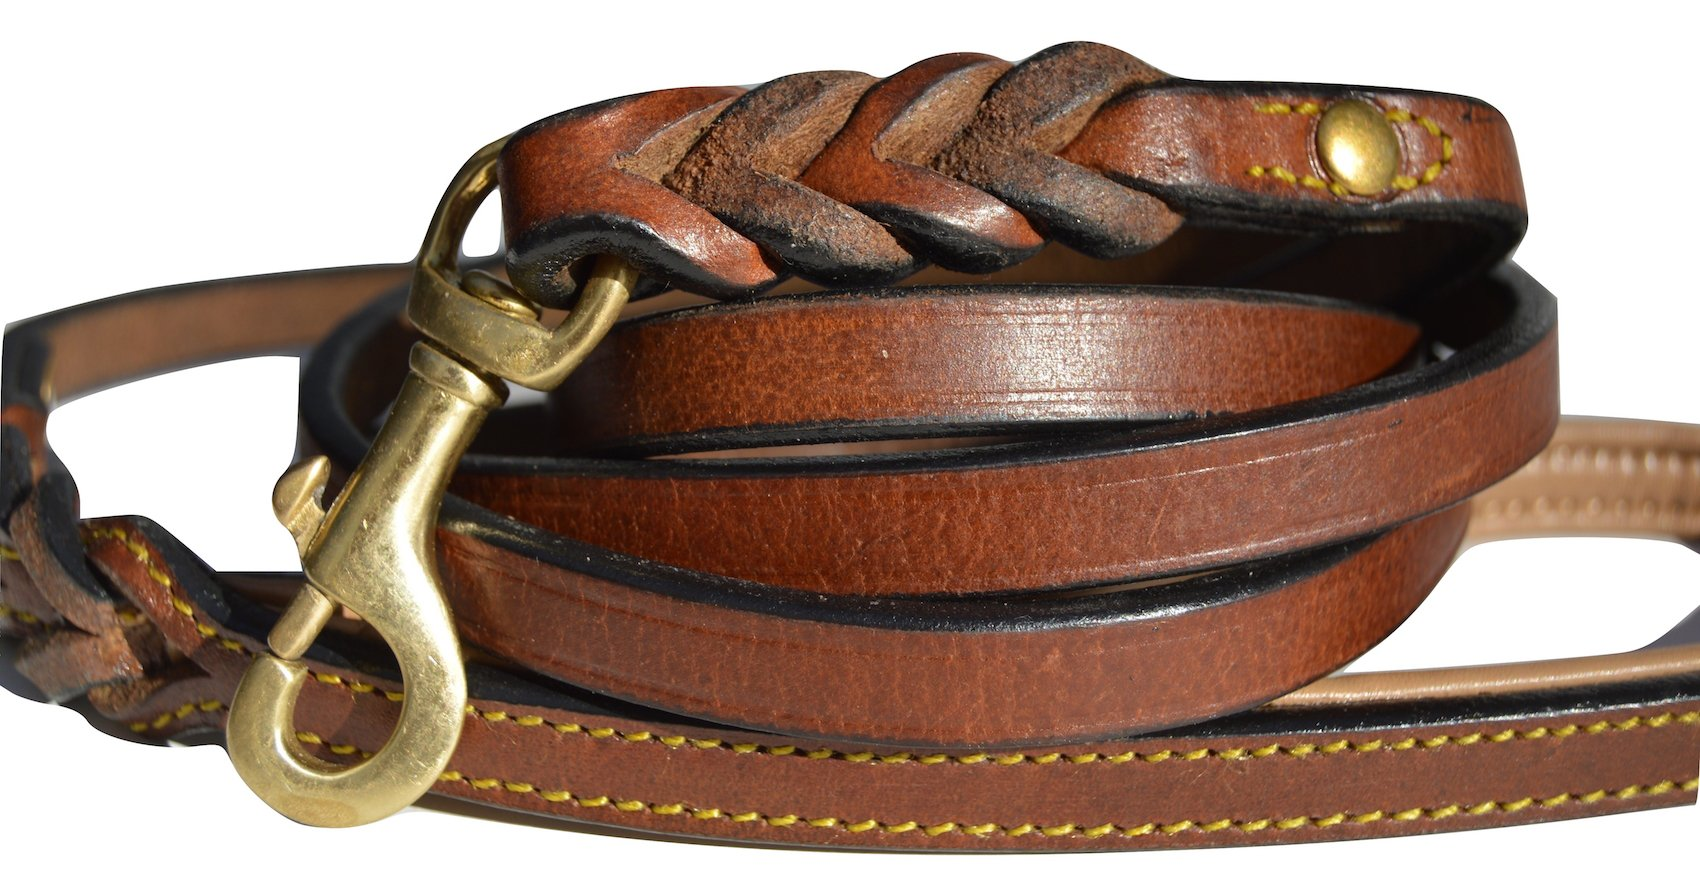 Soft Touch Collars Leather Braided Dog Leash, Brown with Soft Leather Padded Handle, 6 Foot